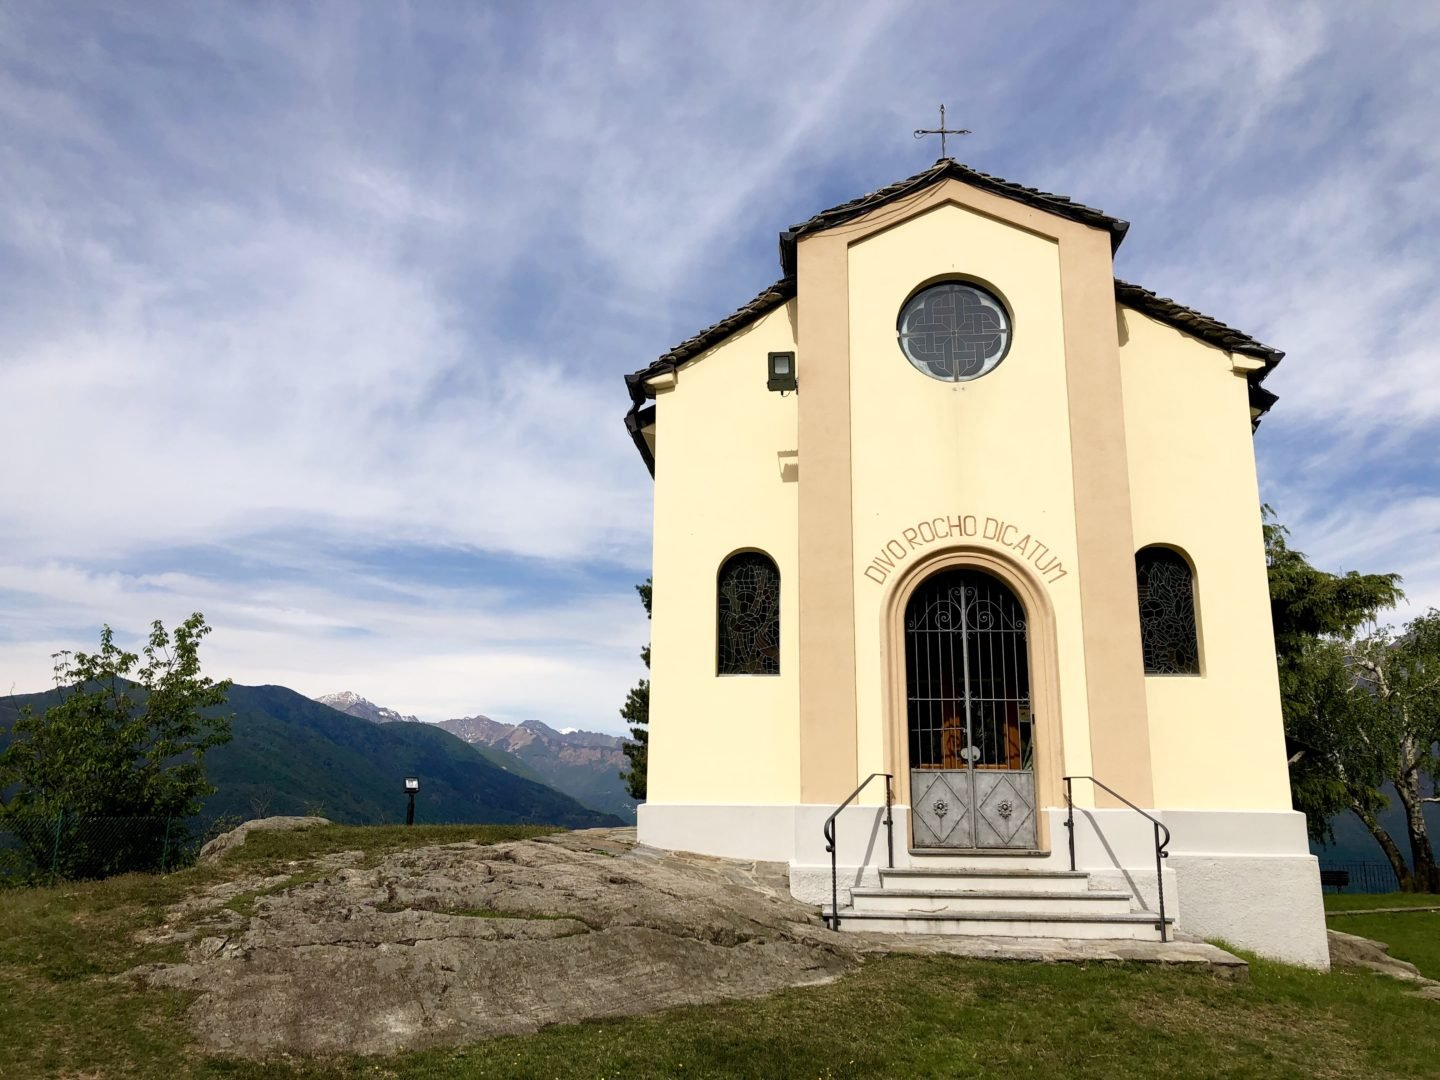 We started off just outside of Maccagno and parked up by a small church called Cheisa S Rocco